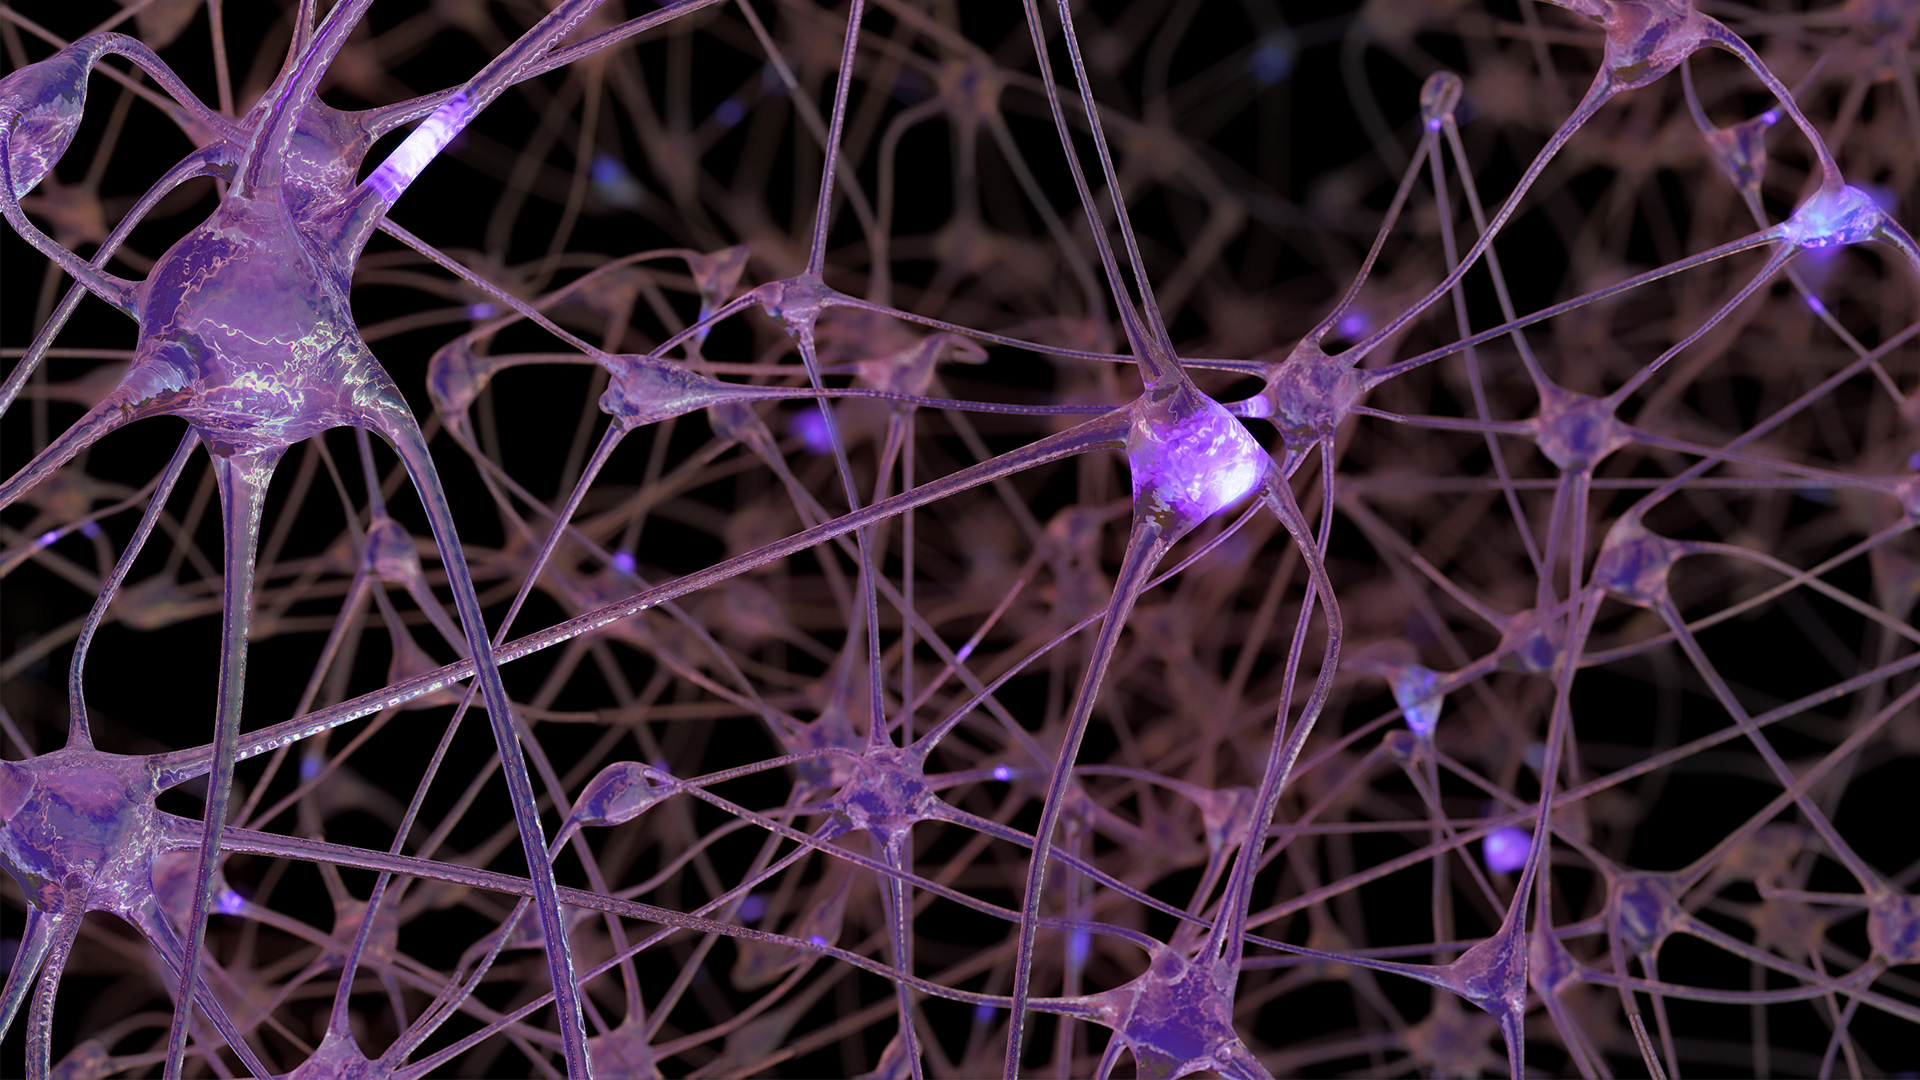 The image shows a 3D rendering of a network of neuron cells and synapses.